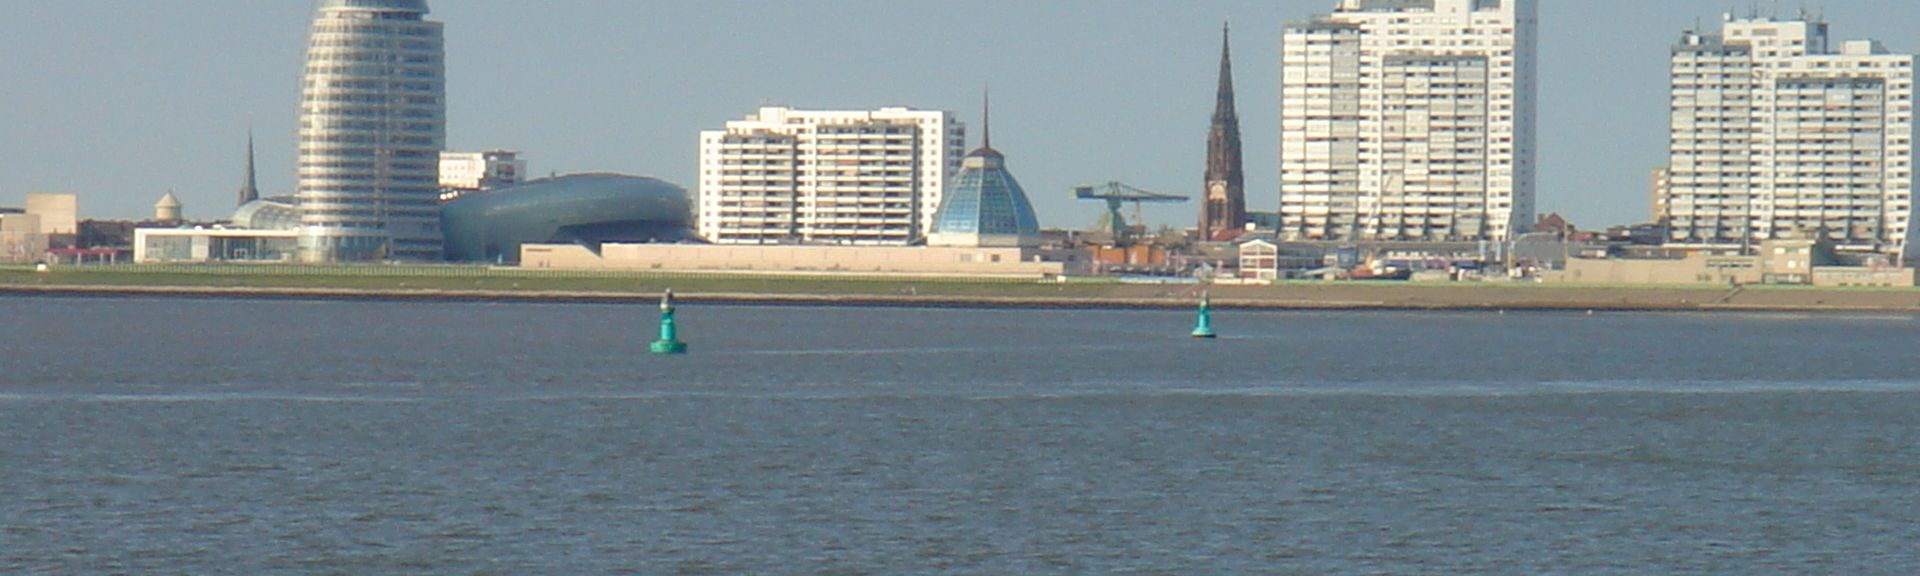 Lehe, Bremerhaven, Germany